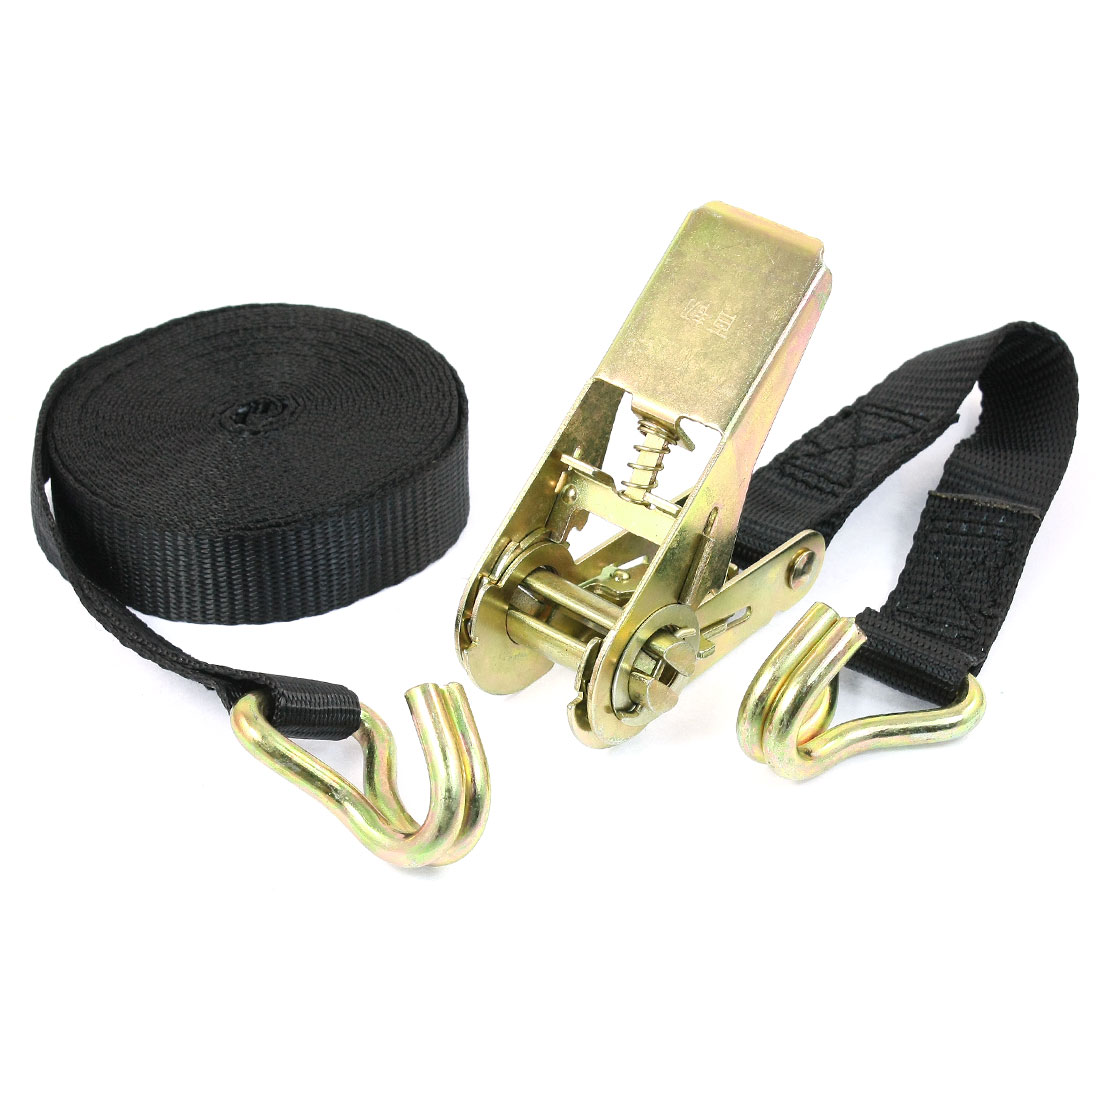 Dual Metal Hooks Cargo Binding Band Ratchet Tie Down Strap 5M 16ft Black